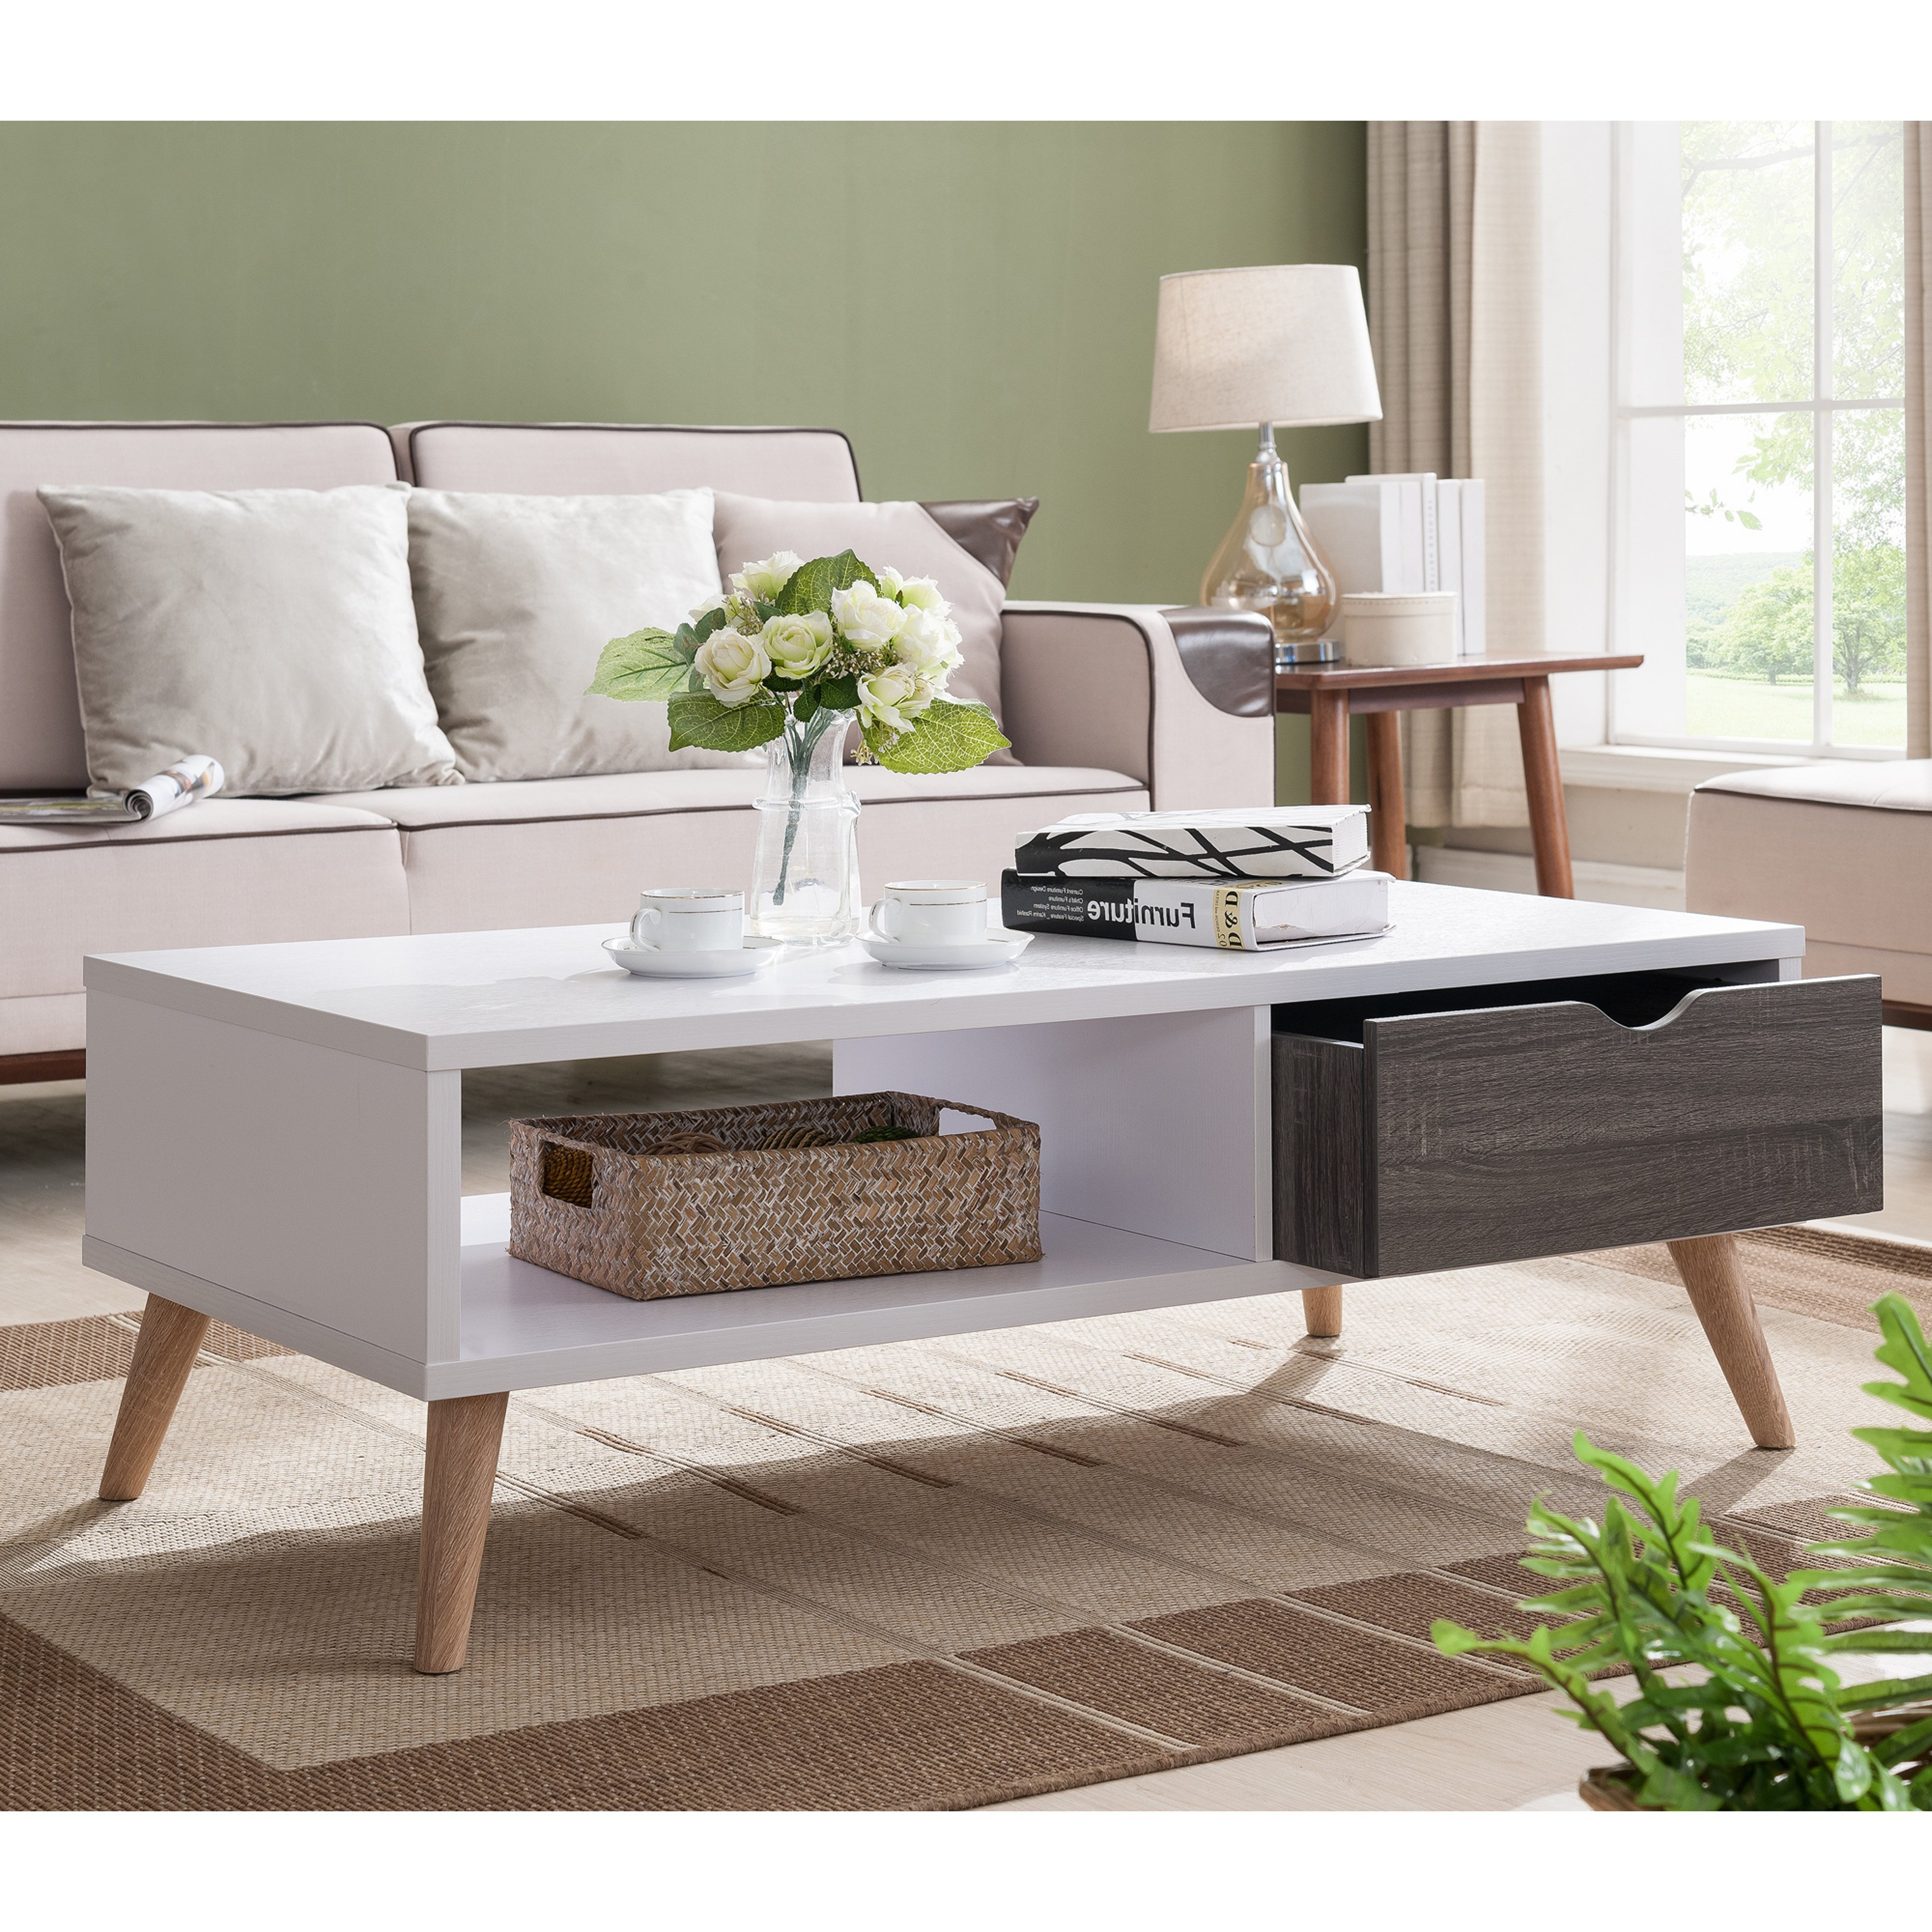 2 Tone Grey And White Marble Coffee Tables In Well Known Shop Furniture Of America Arella Ii Mid Century Modern 2 Tone (View 8 of 20)